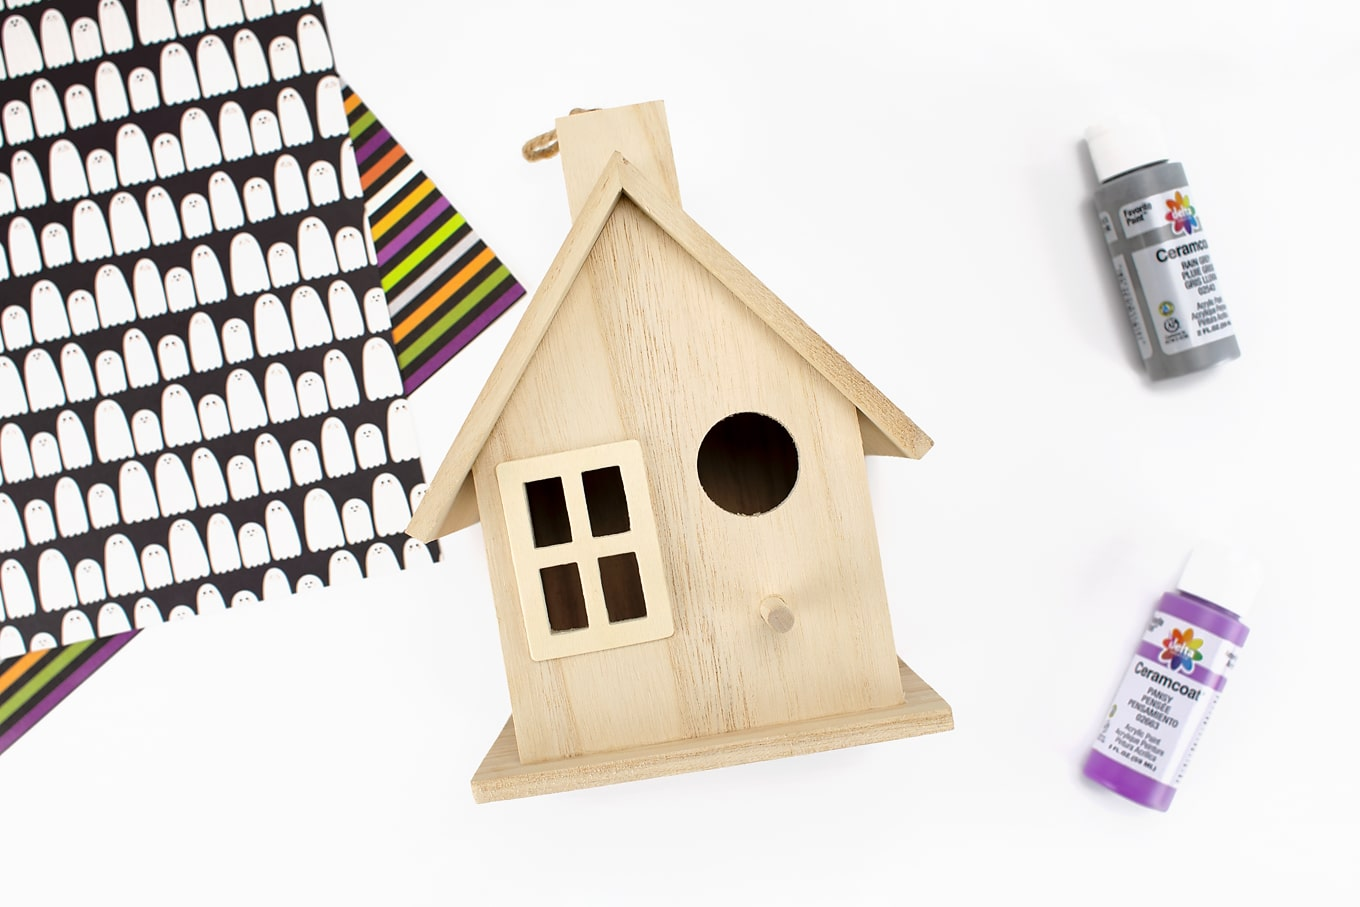 Craft Store Birdhouse for Decorating